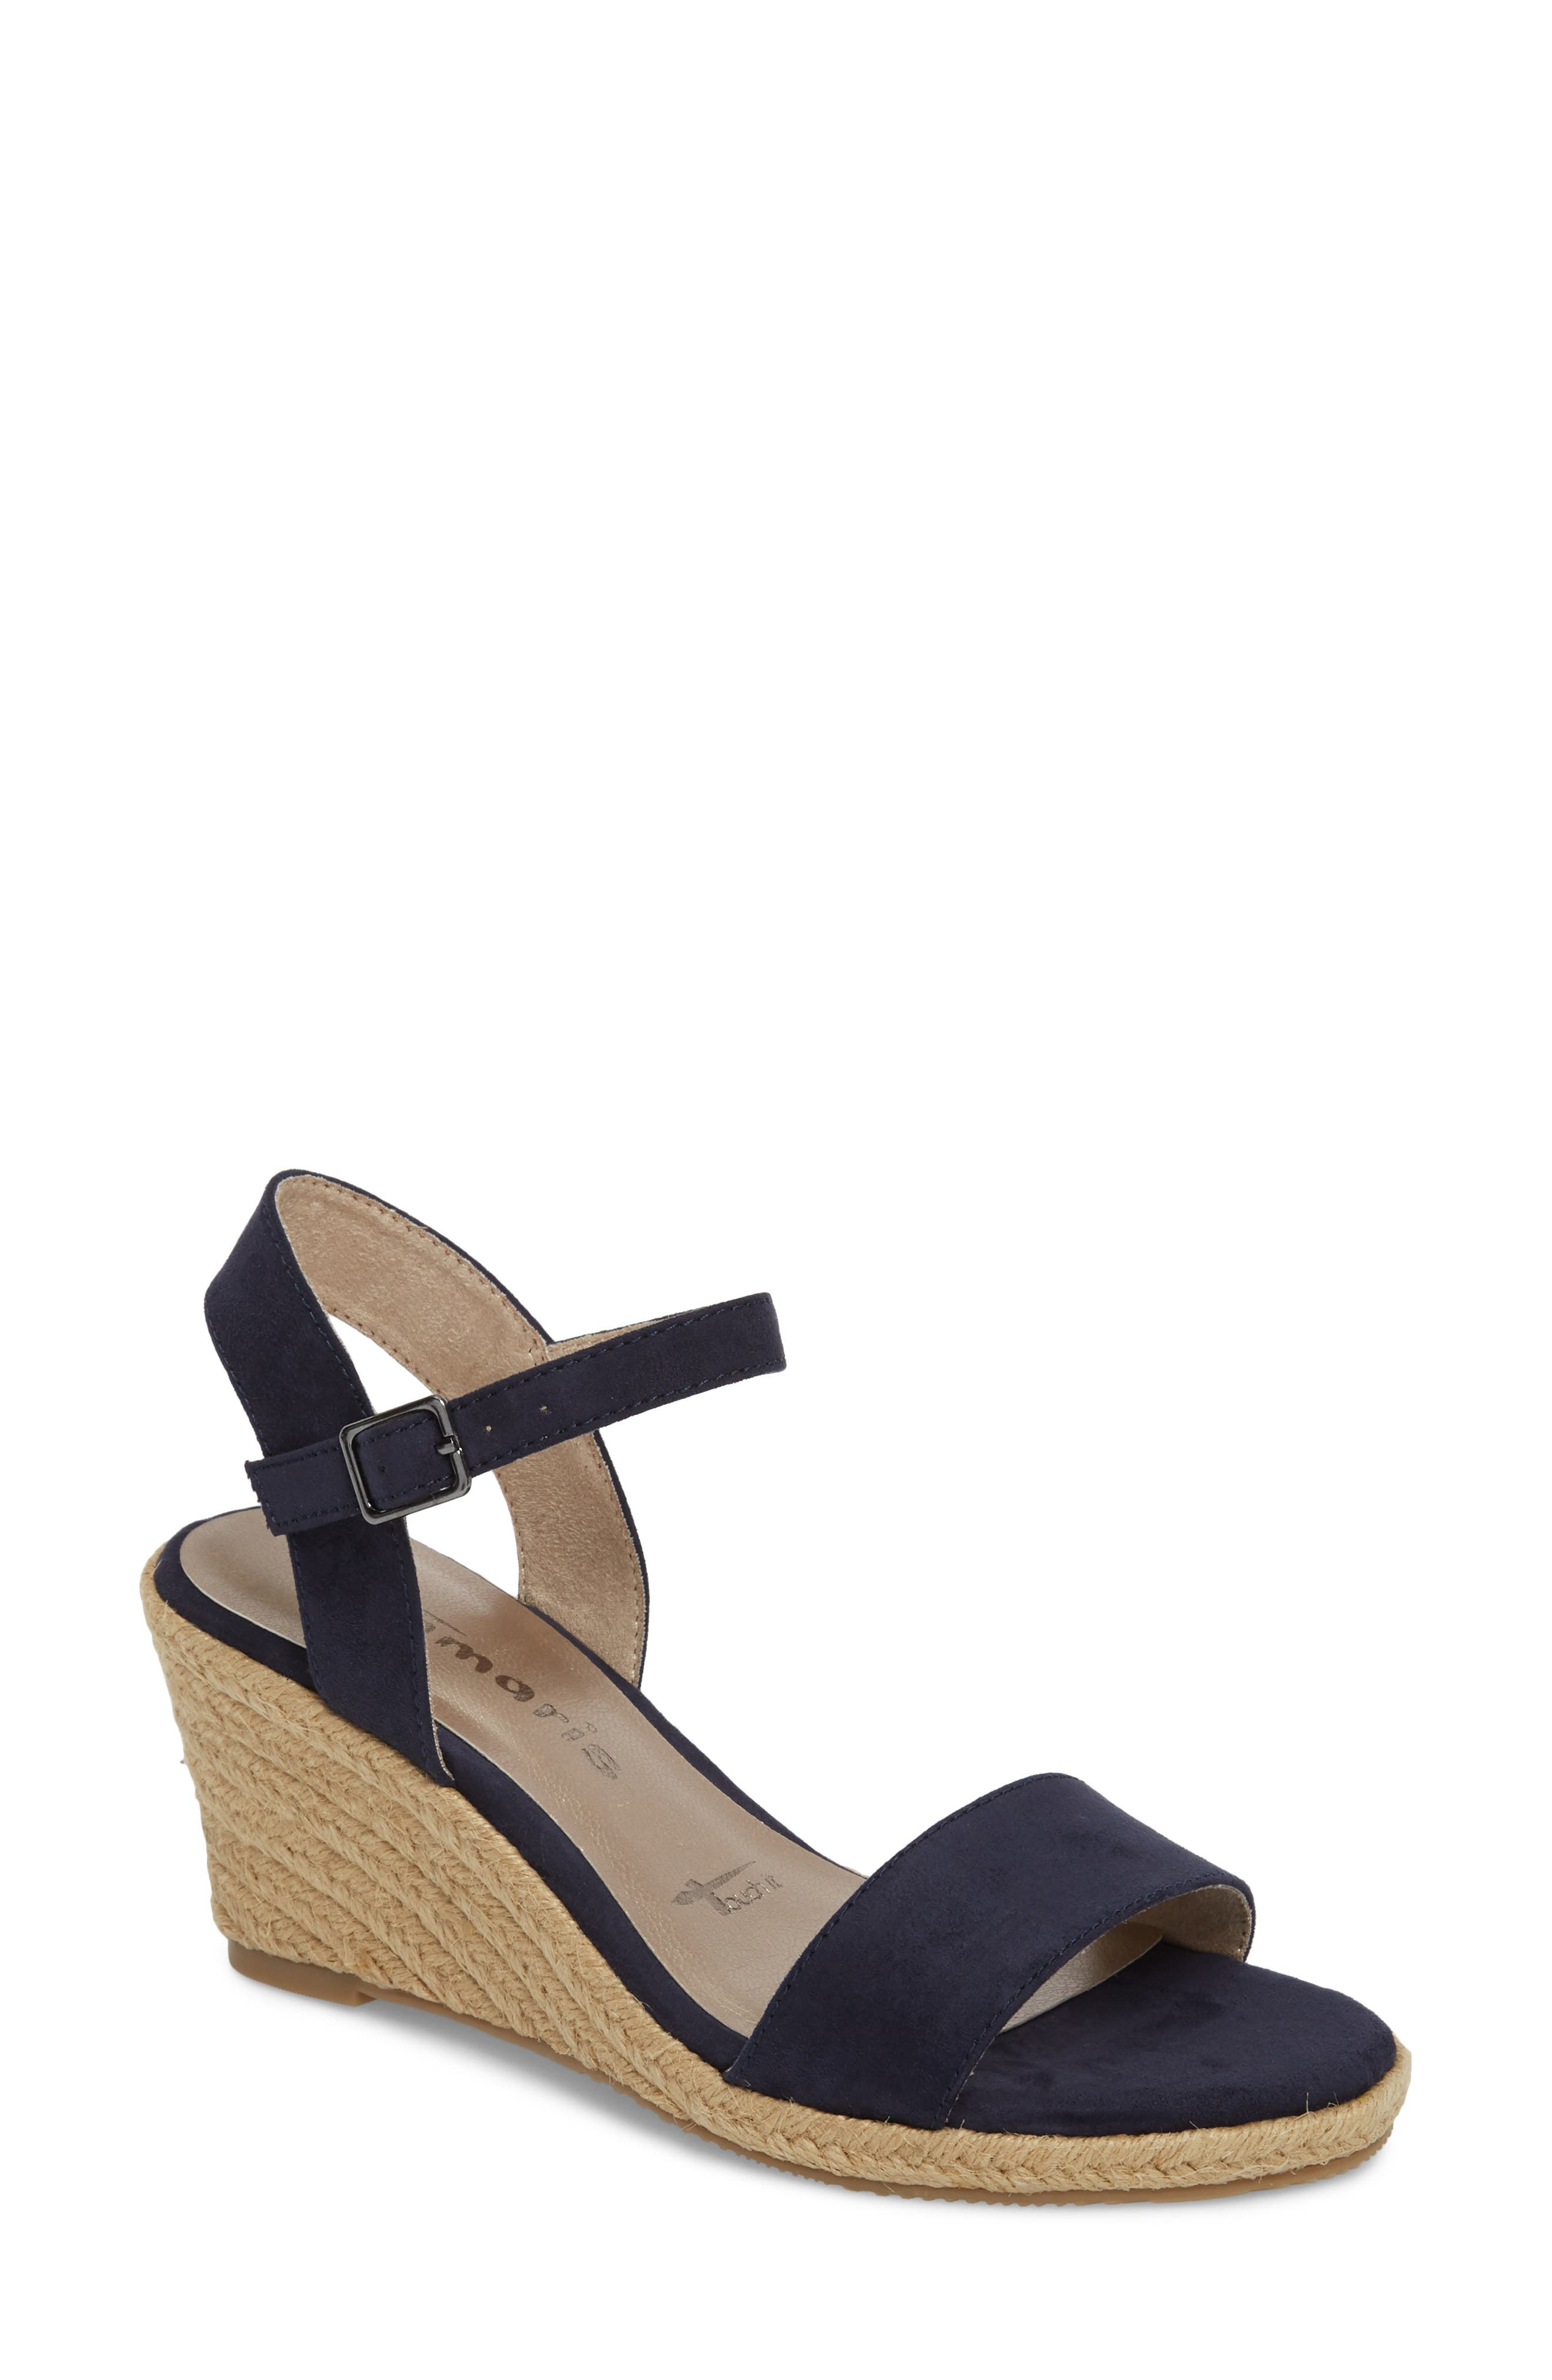 Livia Espadrille Wedge Sandal,                         Main,                         color, NAVY FABRIC